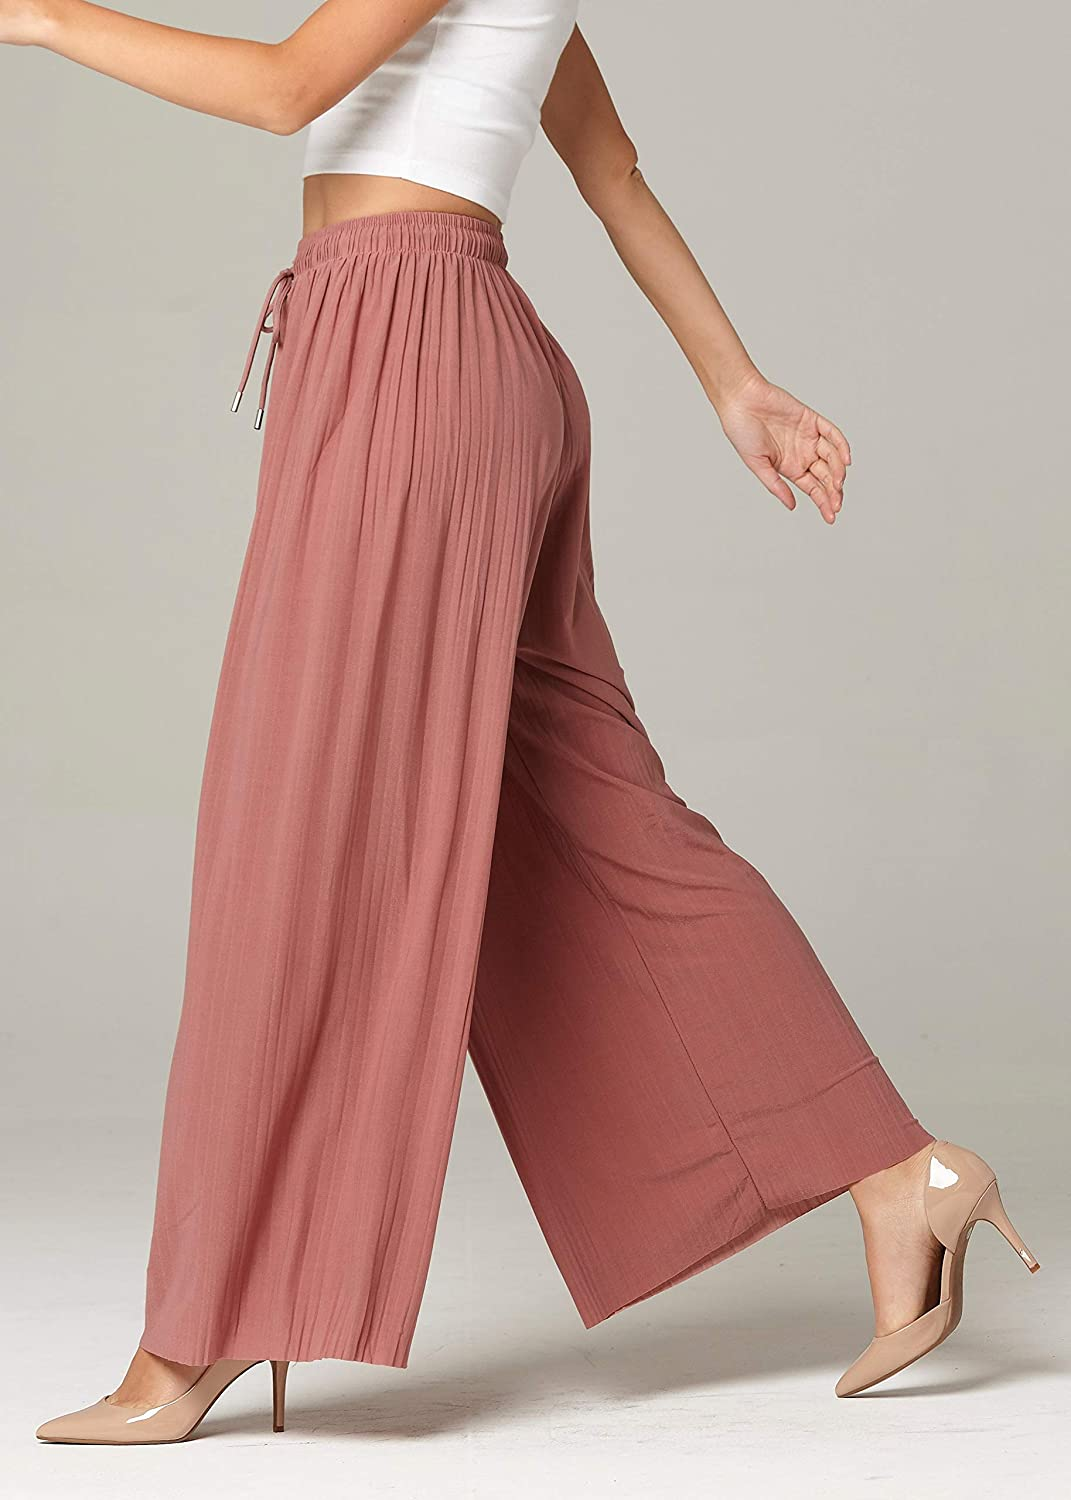 High Waisted Micro Pleated Premium Stretch Palazzo Pants for Women Regular and Plus Sizes